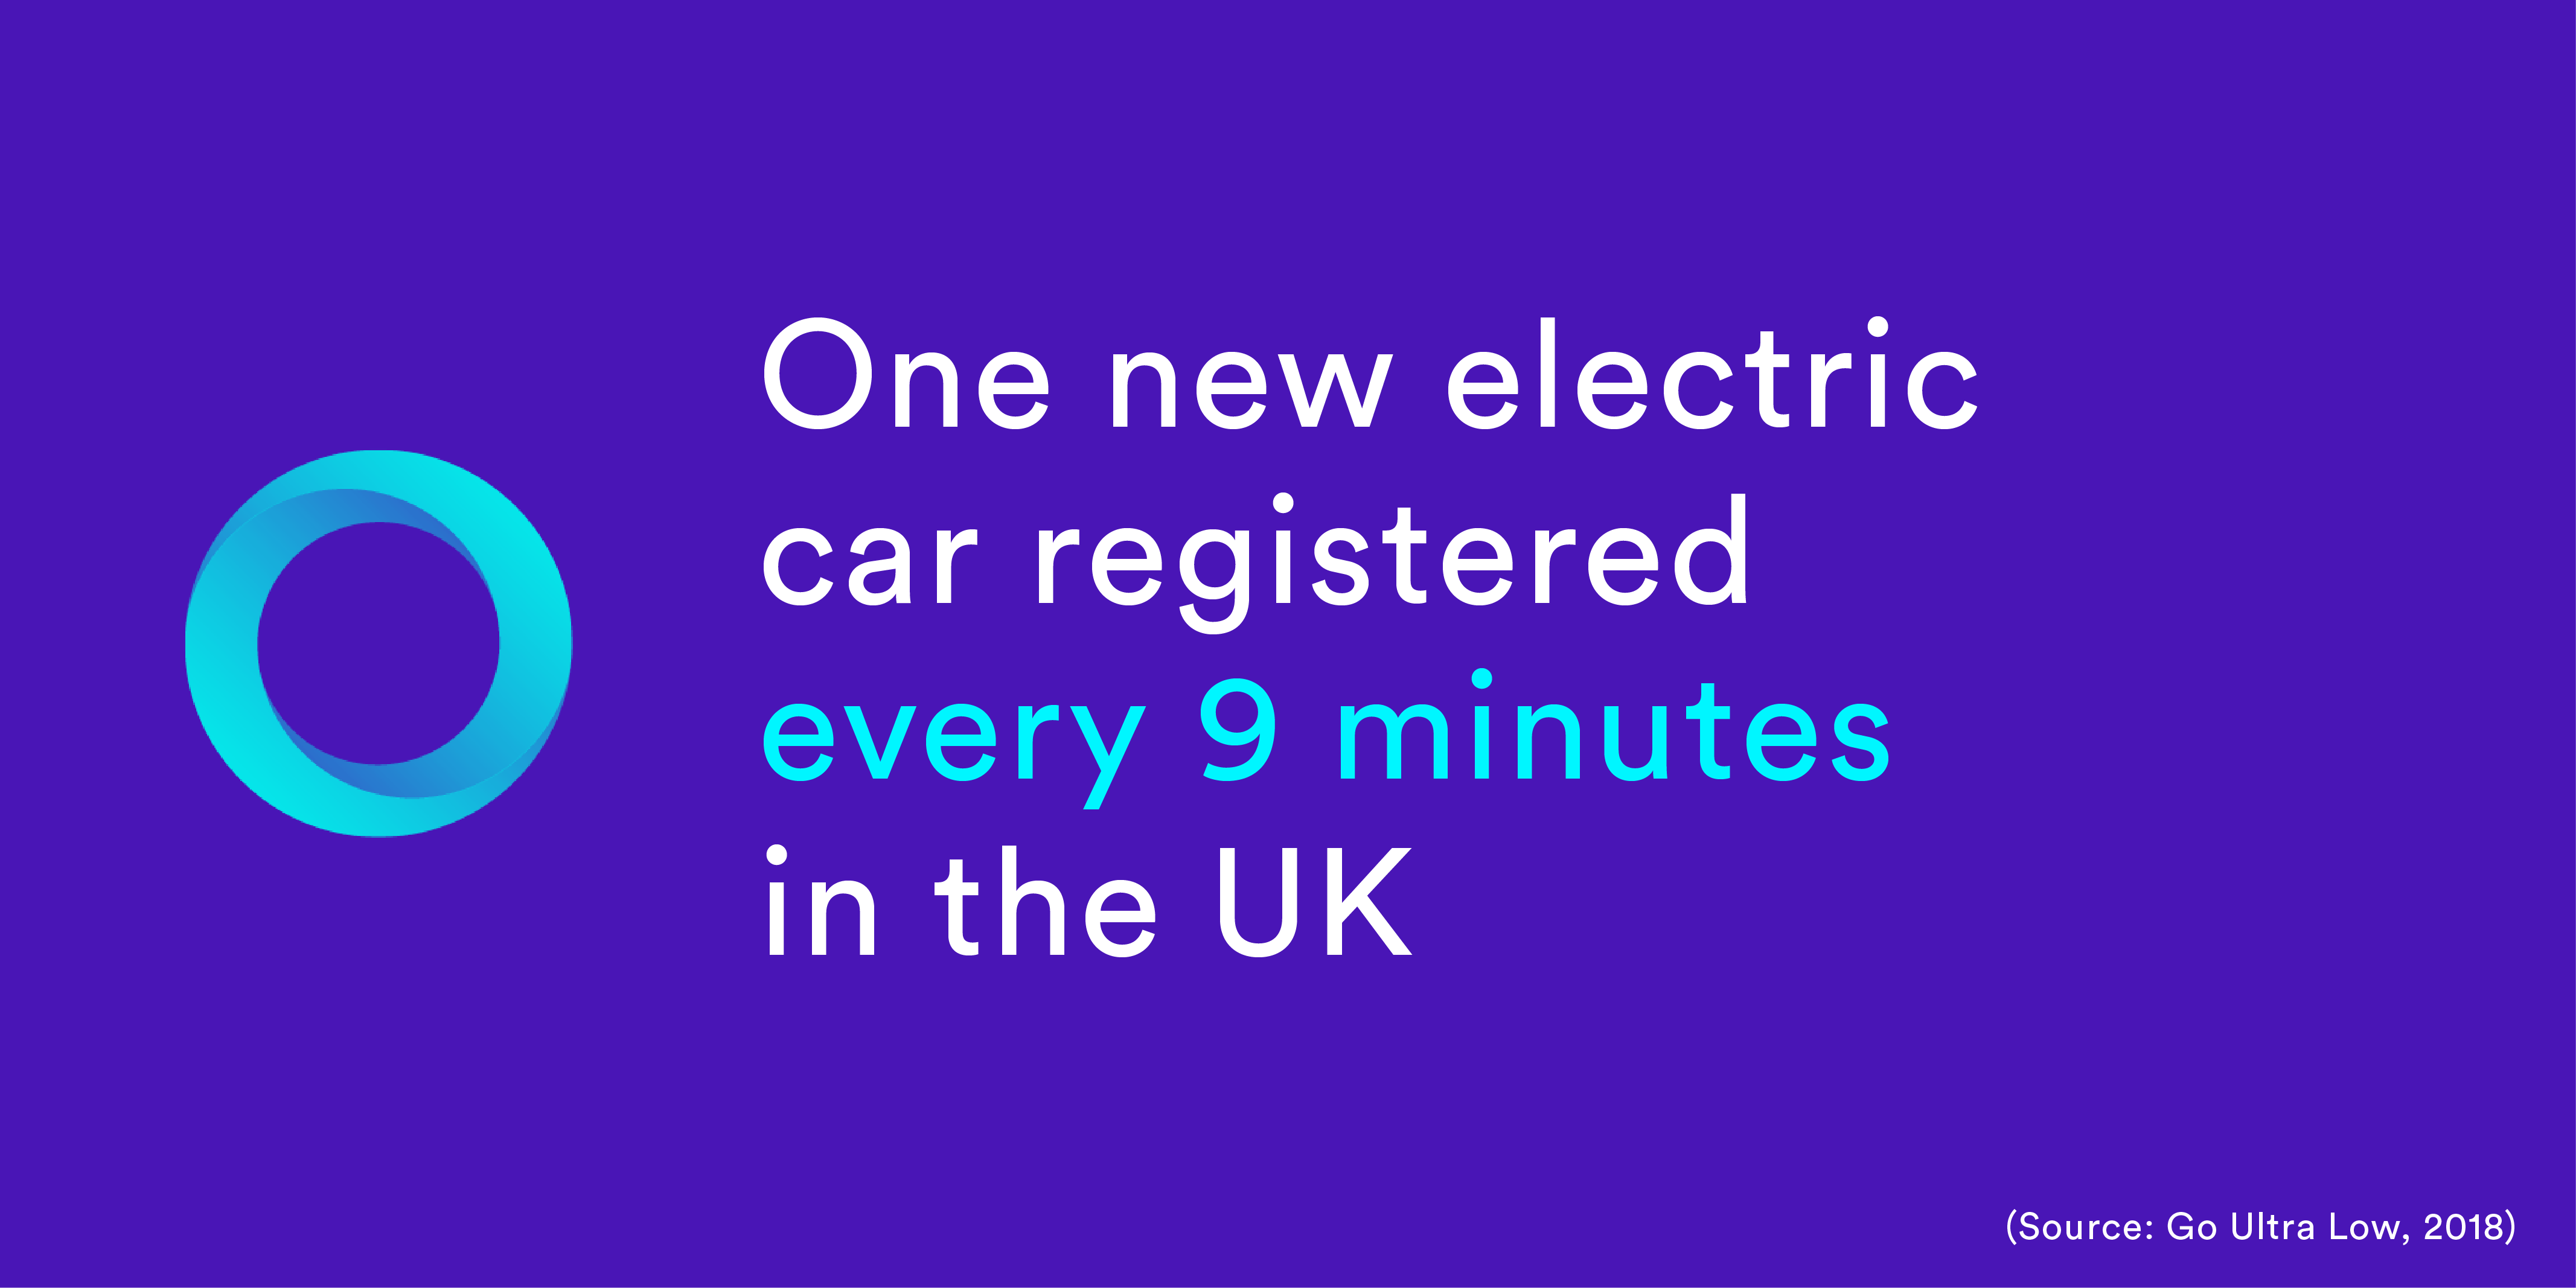 EO Charging - One new car registered every 9 minutes in the UK